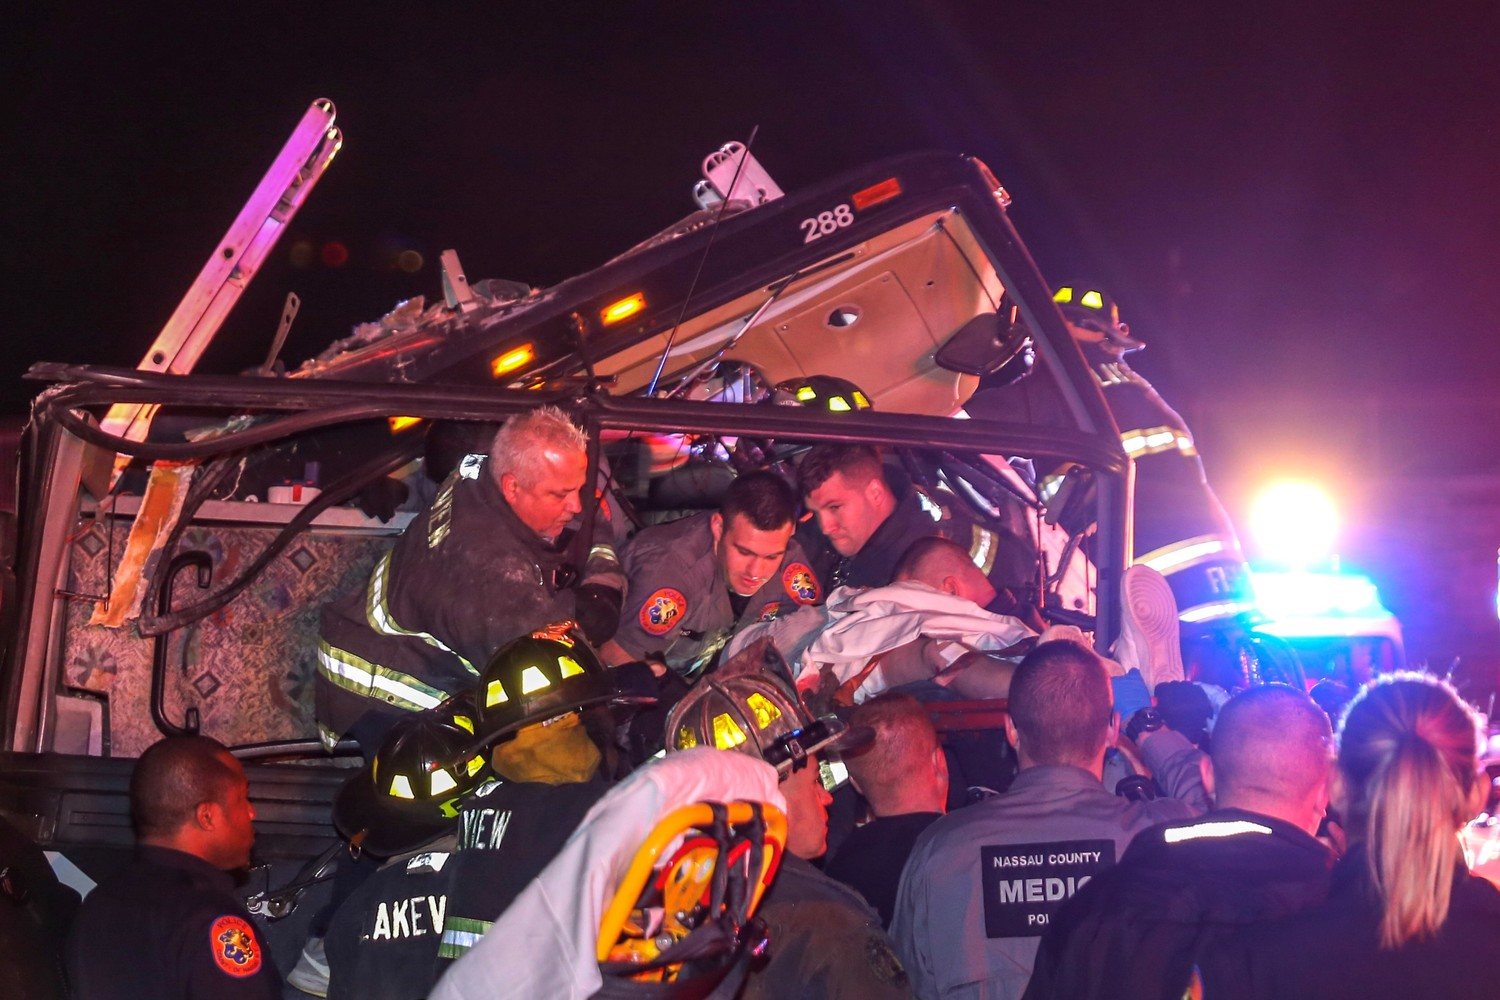 The Lakeview Fire Department and Nassau County EMS workers teamed up to rescue people trapped in the bus.